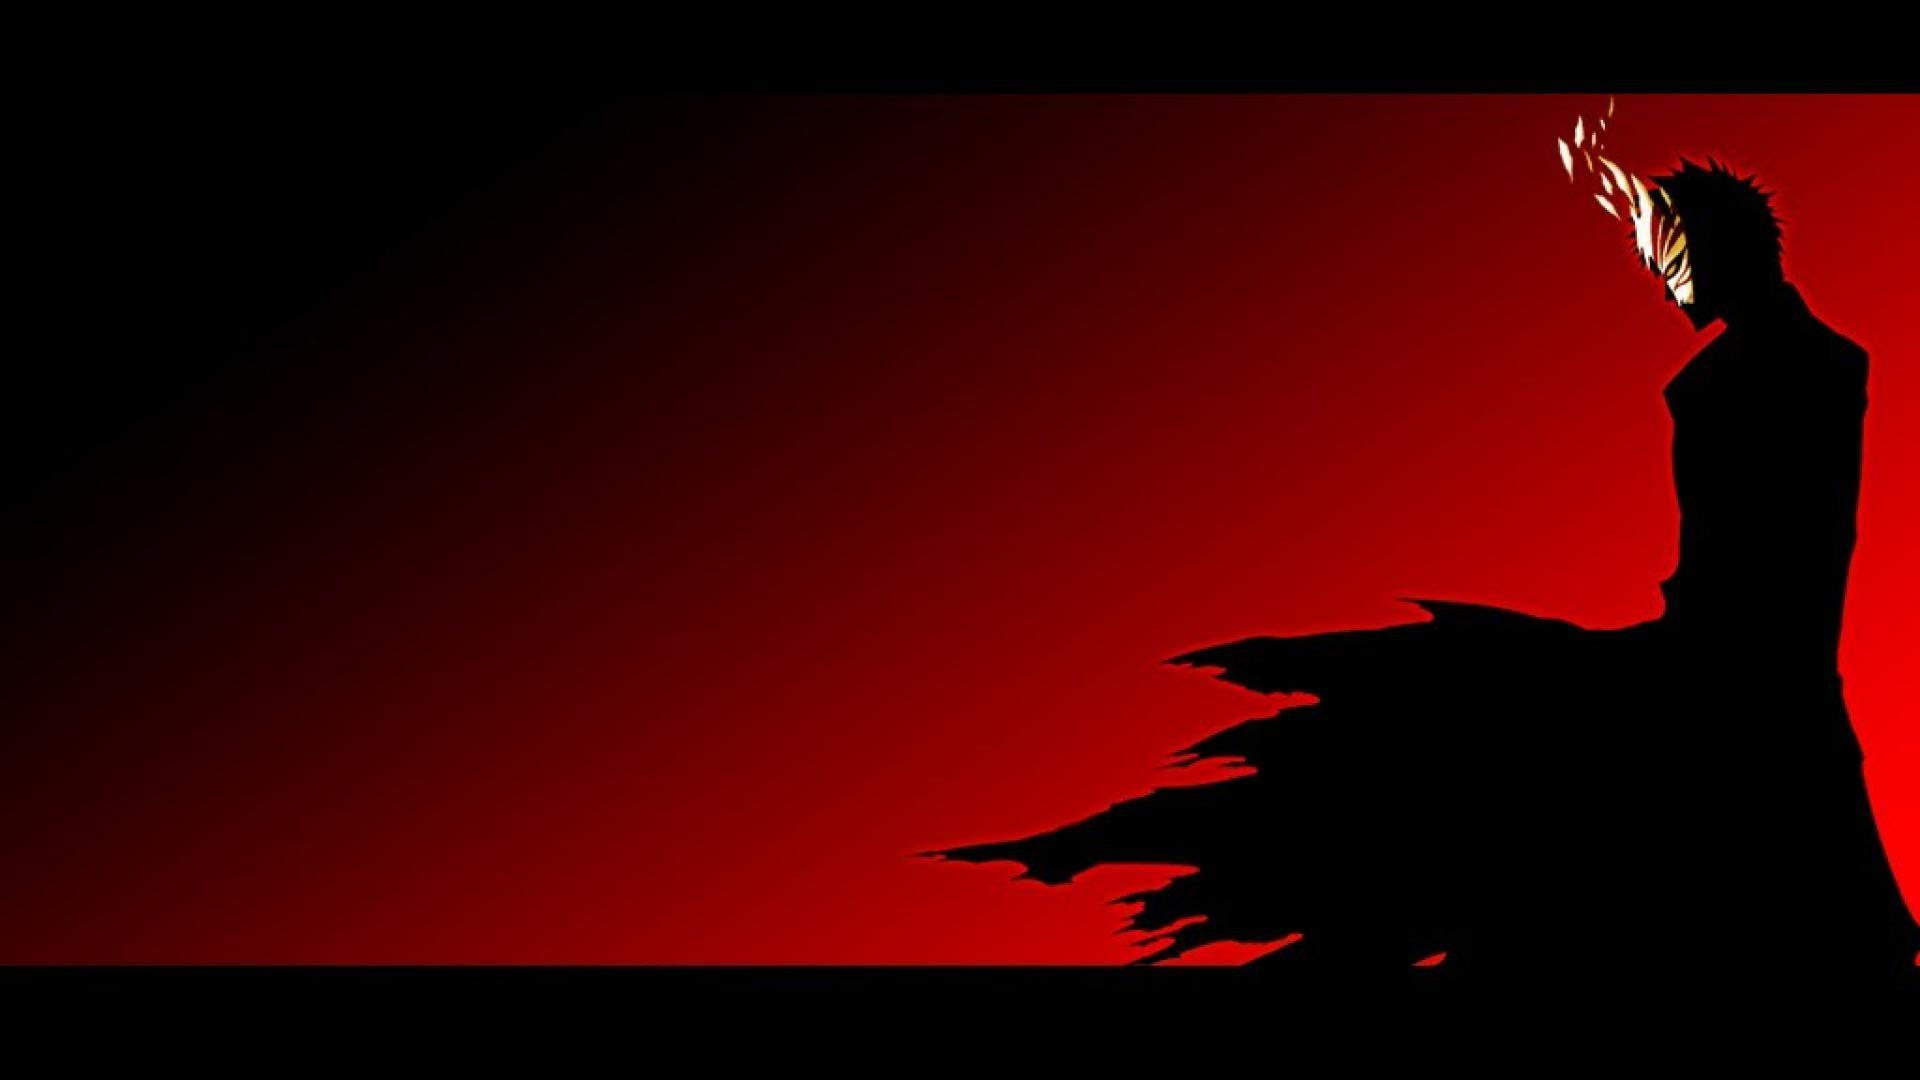 Black Red Wallpapers HD - Wallpaper Cave